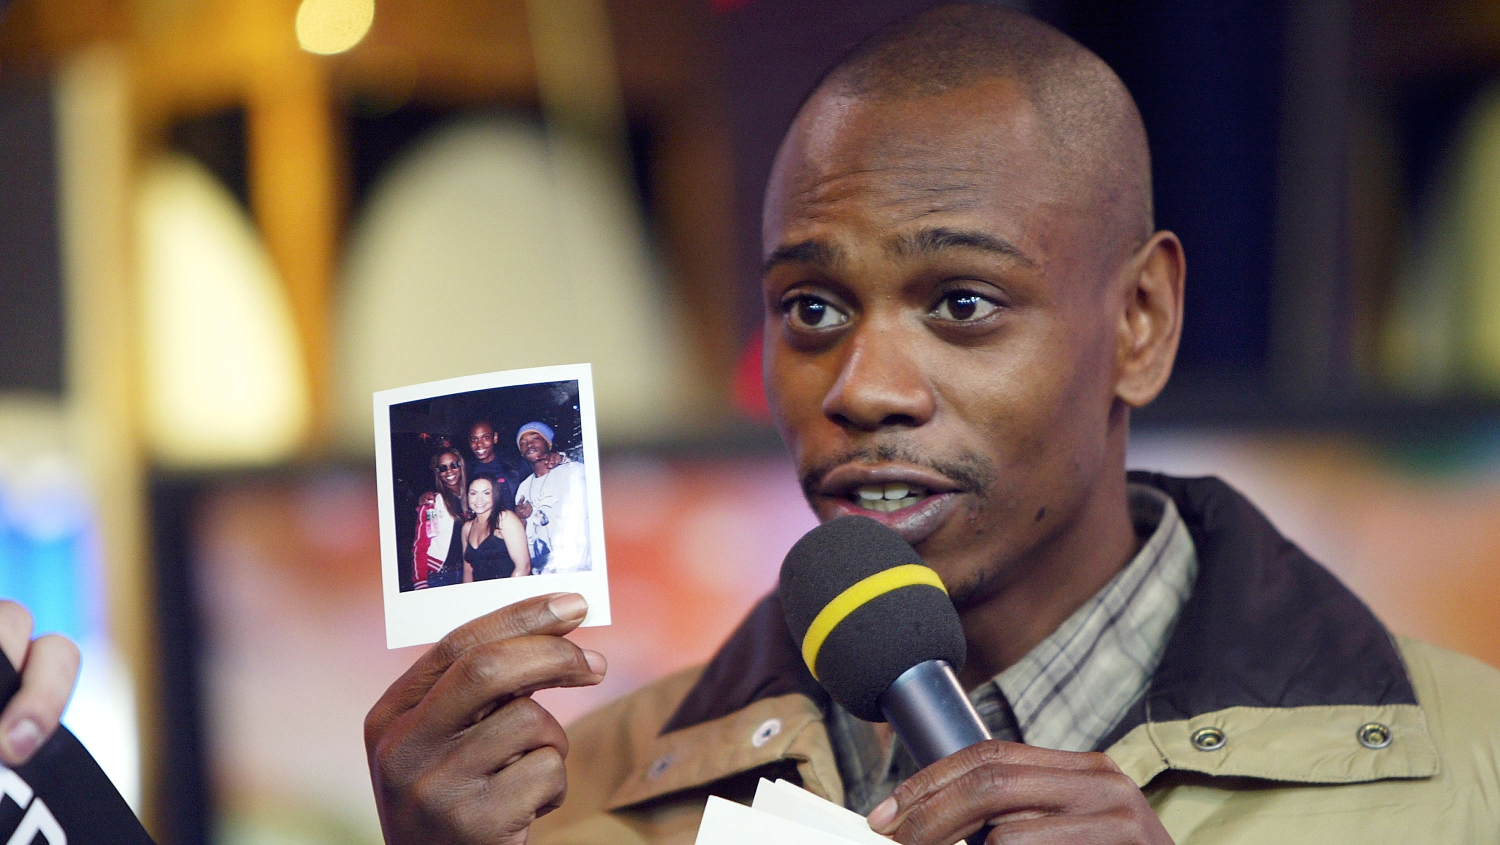 dave chappelle talks quitting chappelle s show with david letterman cbs philly https philadelphia cbslocal com 2014 06 11 dave chappelle talks quitting chappelles show with david letterman